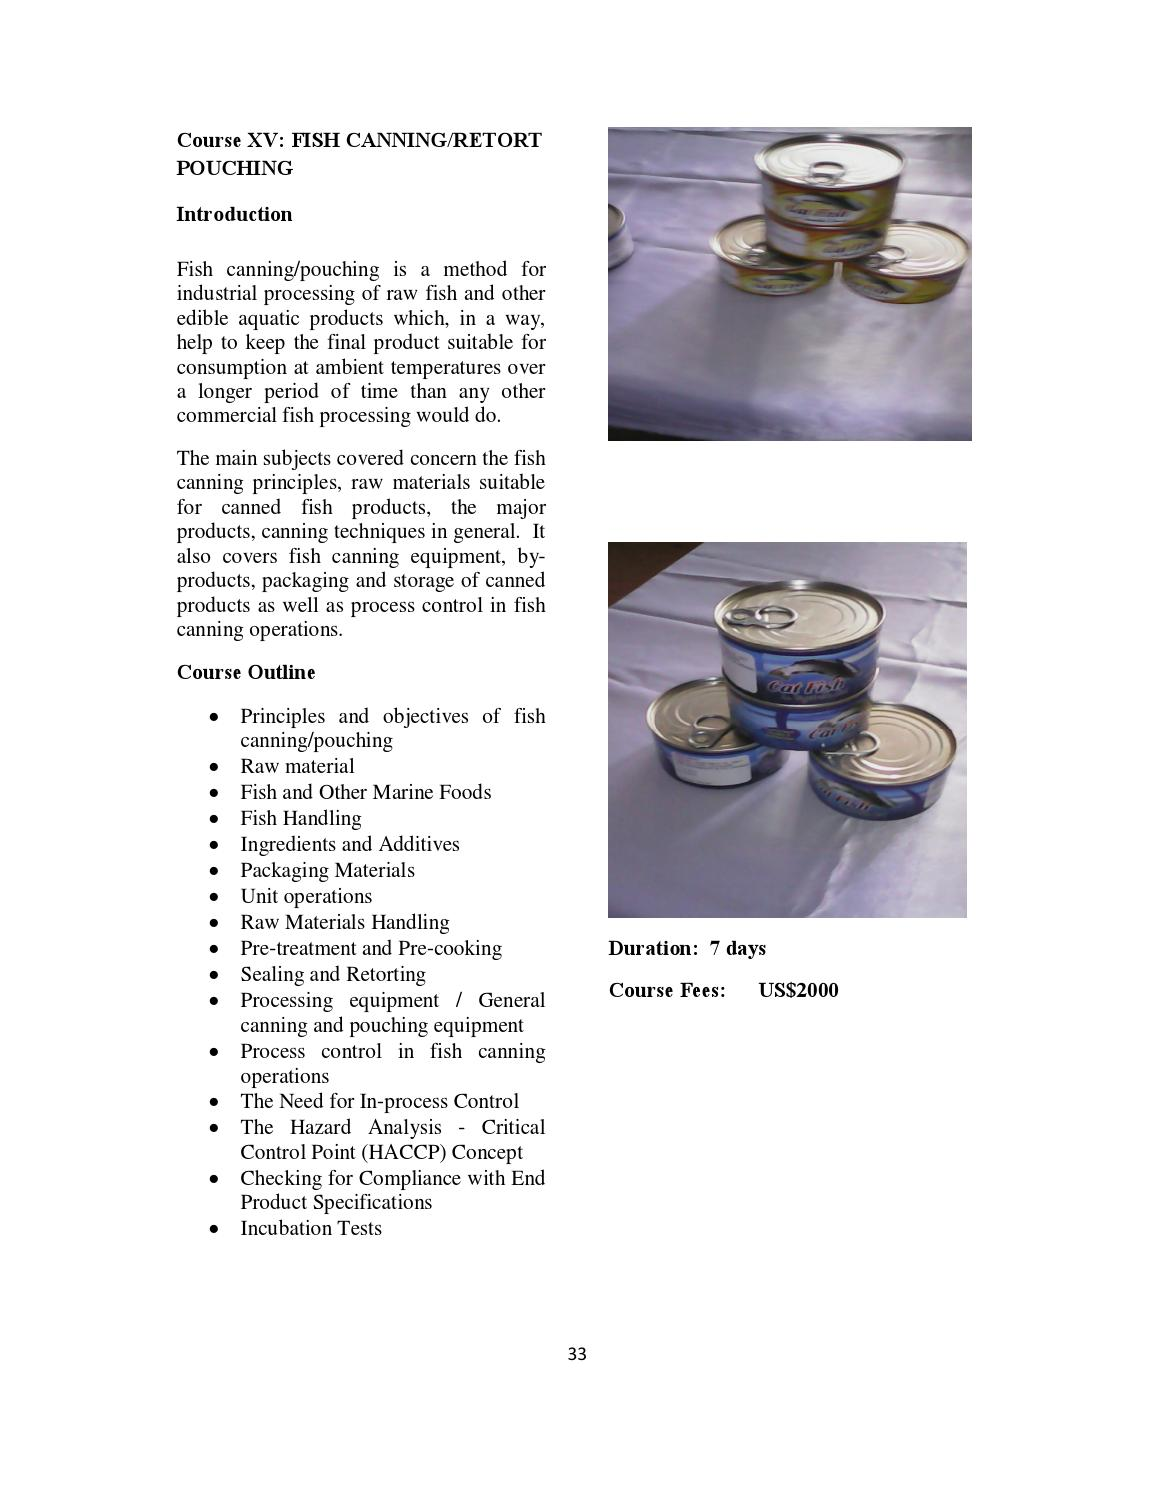 TRAINING BROCHURE ON AQUACULTURE PRODUCTION by CORAF/WECARD